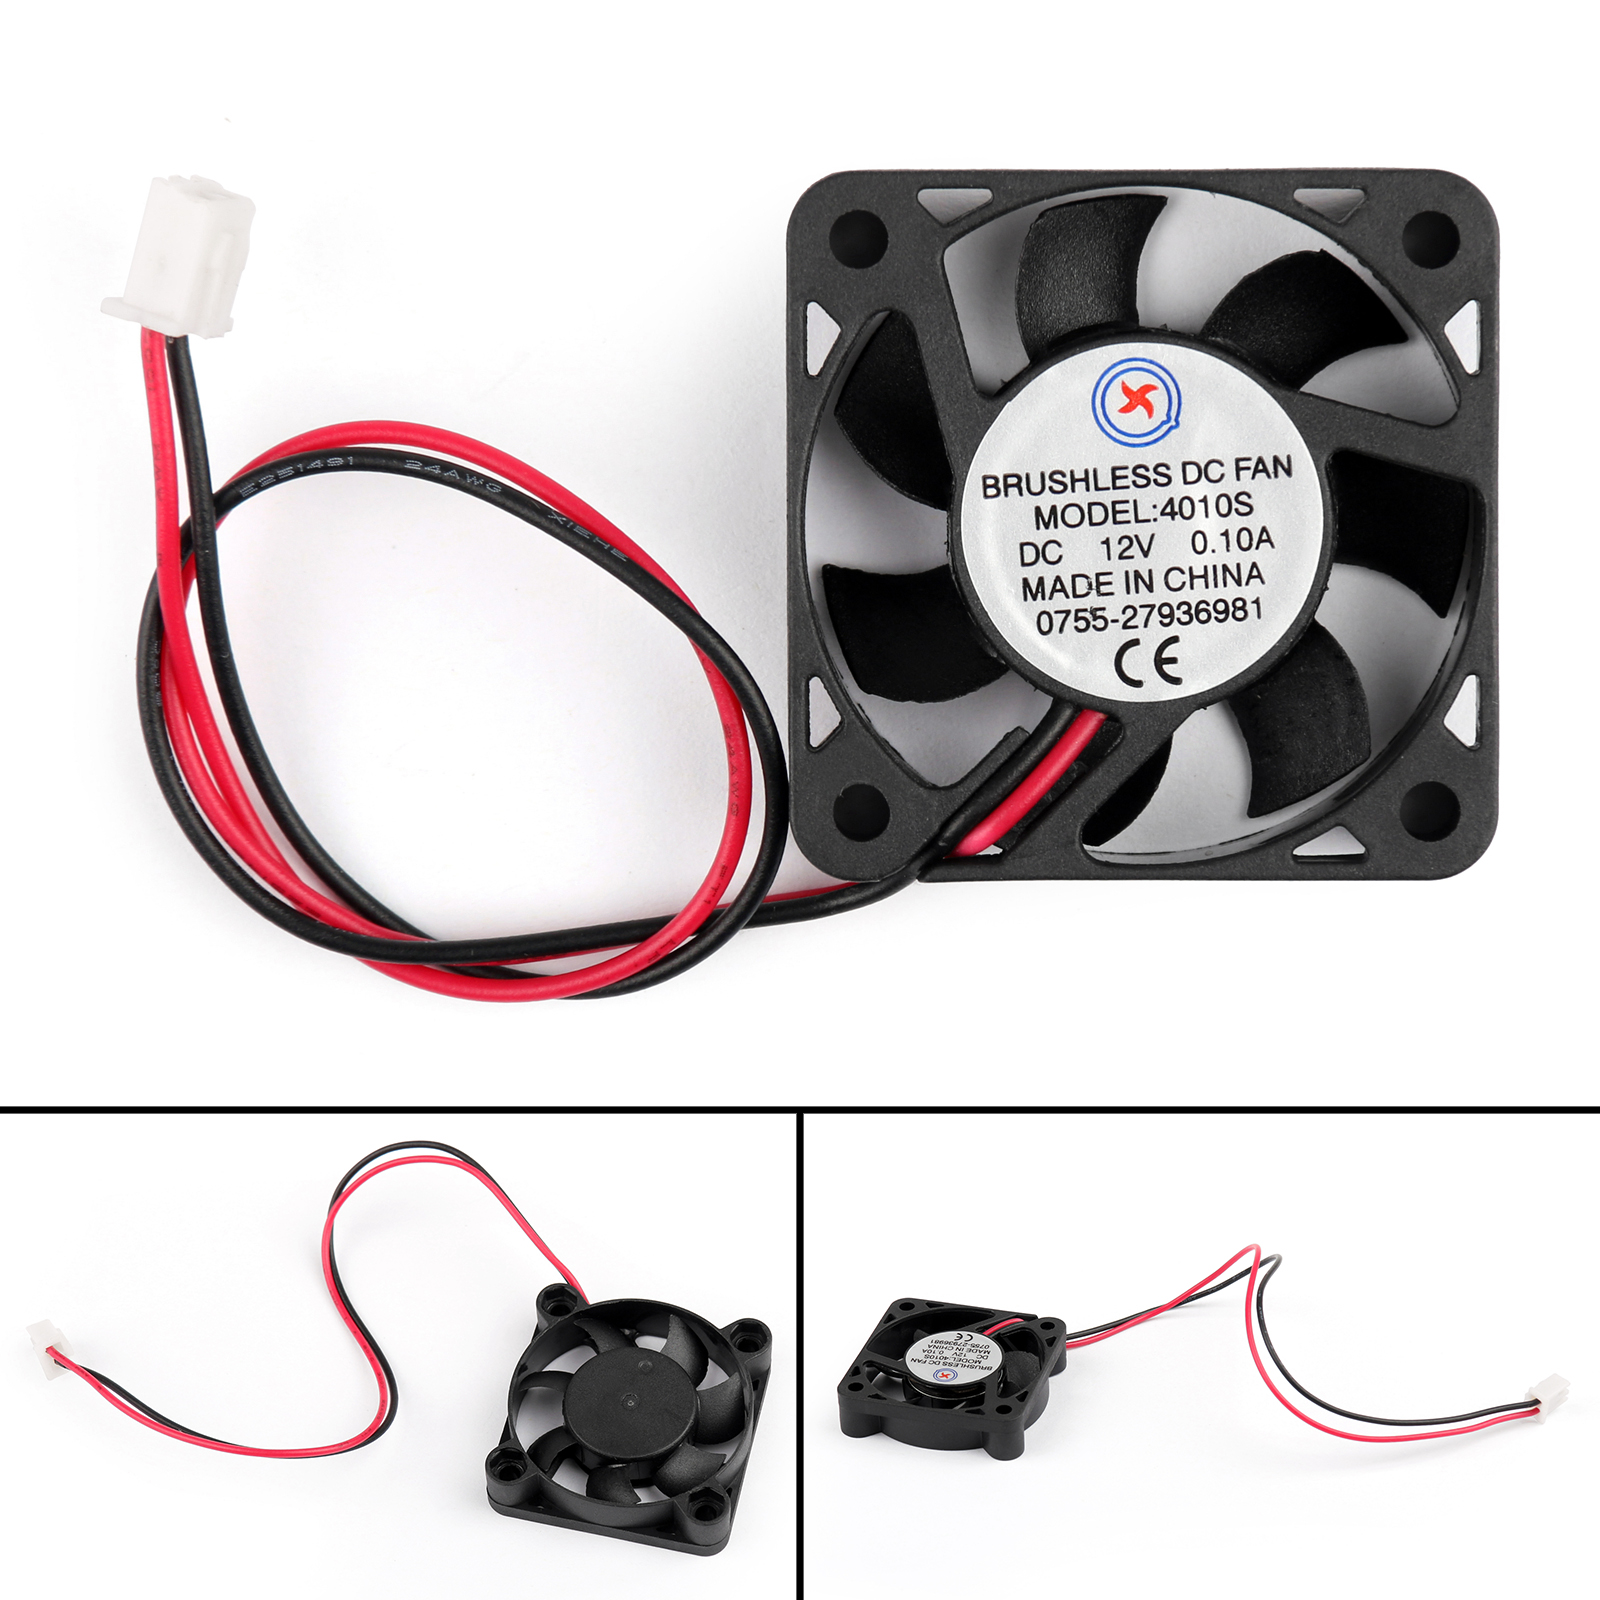 Dc Brushless Cooling Pc Computer Fan 12v 24v 4010s 40x40x10mm 01a Electric Motor Repair Bearings Shape Same As The Picture Show 1 Type 2 Size Lxwxh 3 Volume 4 Bearing Sleeve 5 Operation Voltage